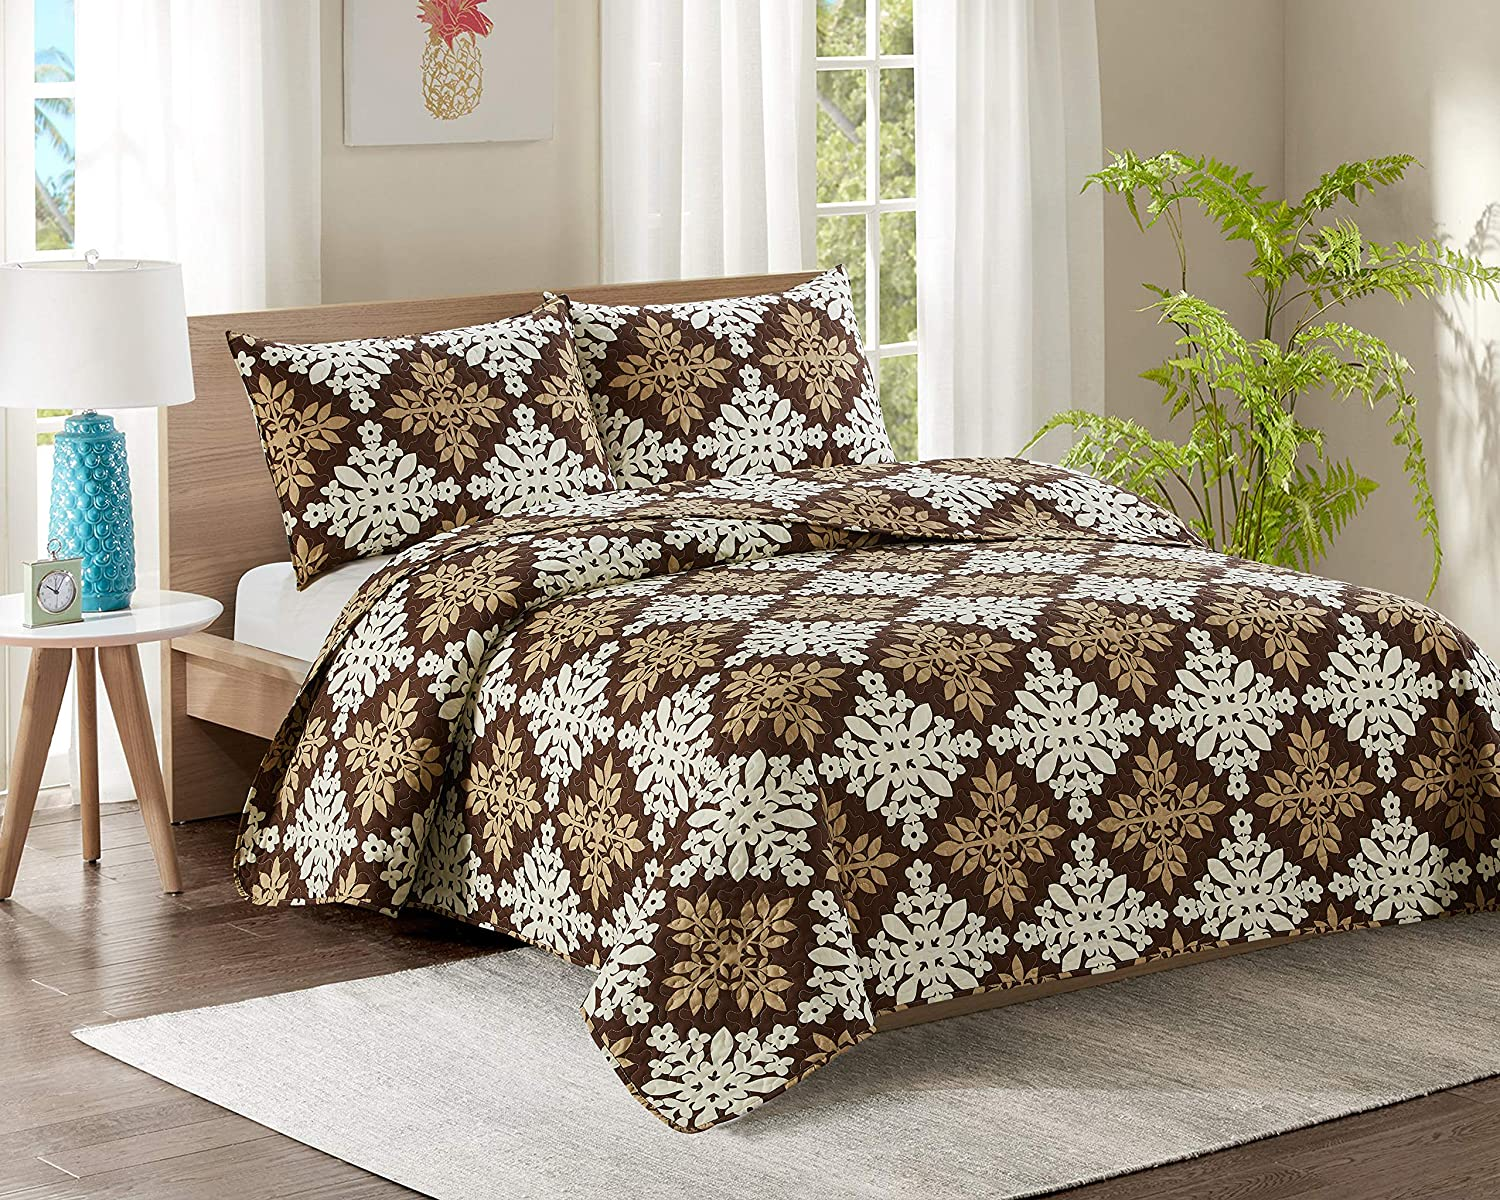 50/% Polyester Quilt YJ1 White Flowers Quilt Throw Polycotton Quilted Bed Throws 100/% Polyester filling with 2 Pillow Coverlet Kiplux Luxury Single Bed Quilted Bedspread 50/% Cotton